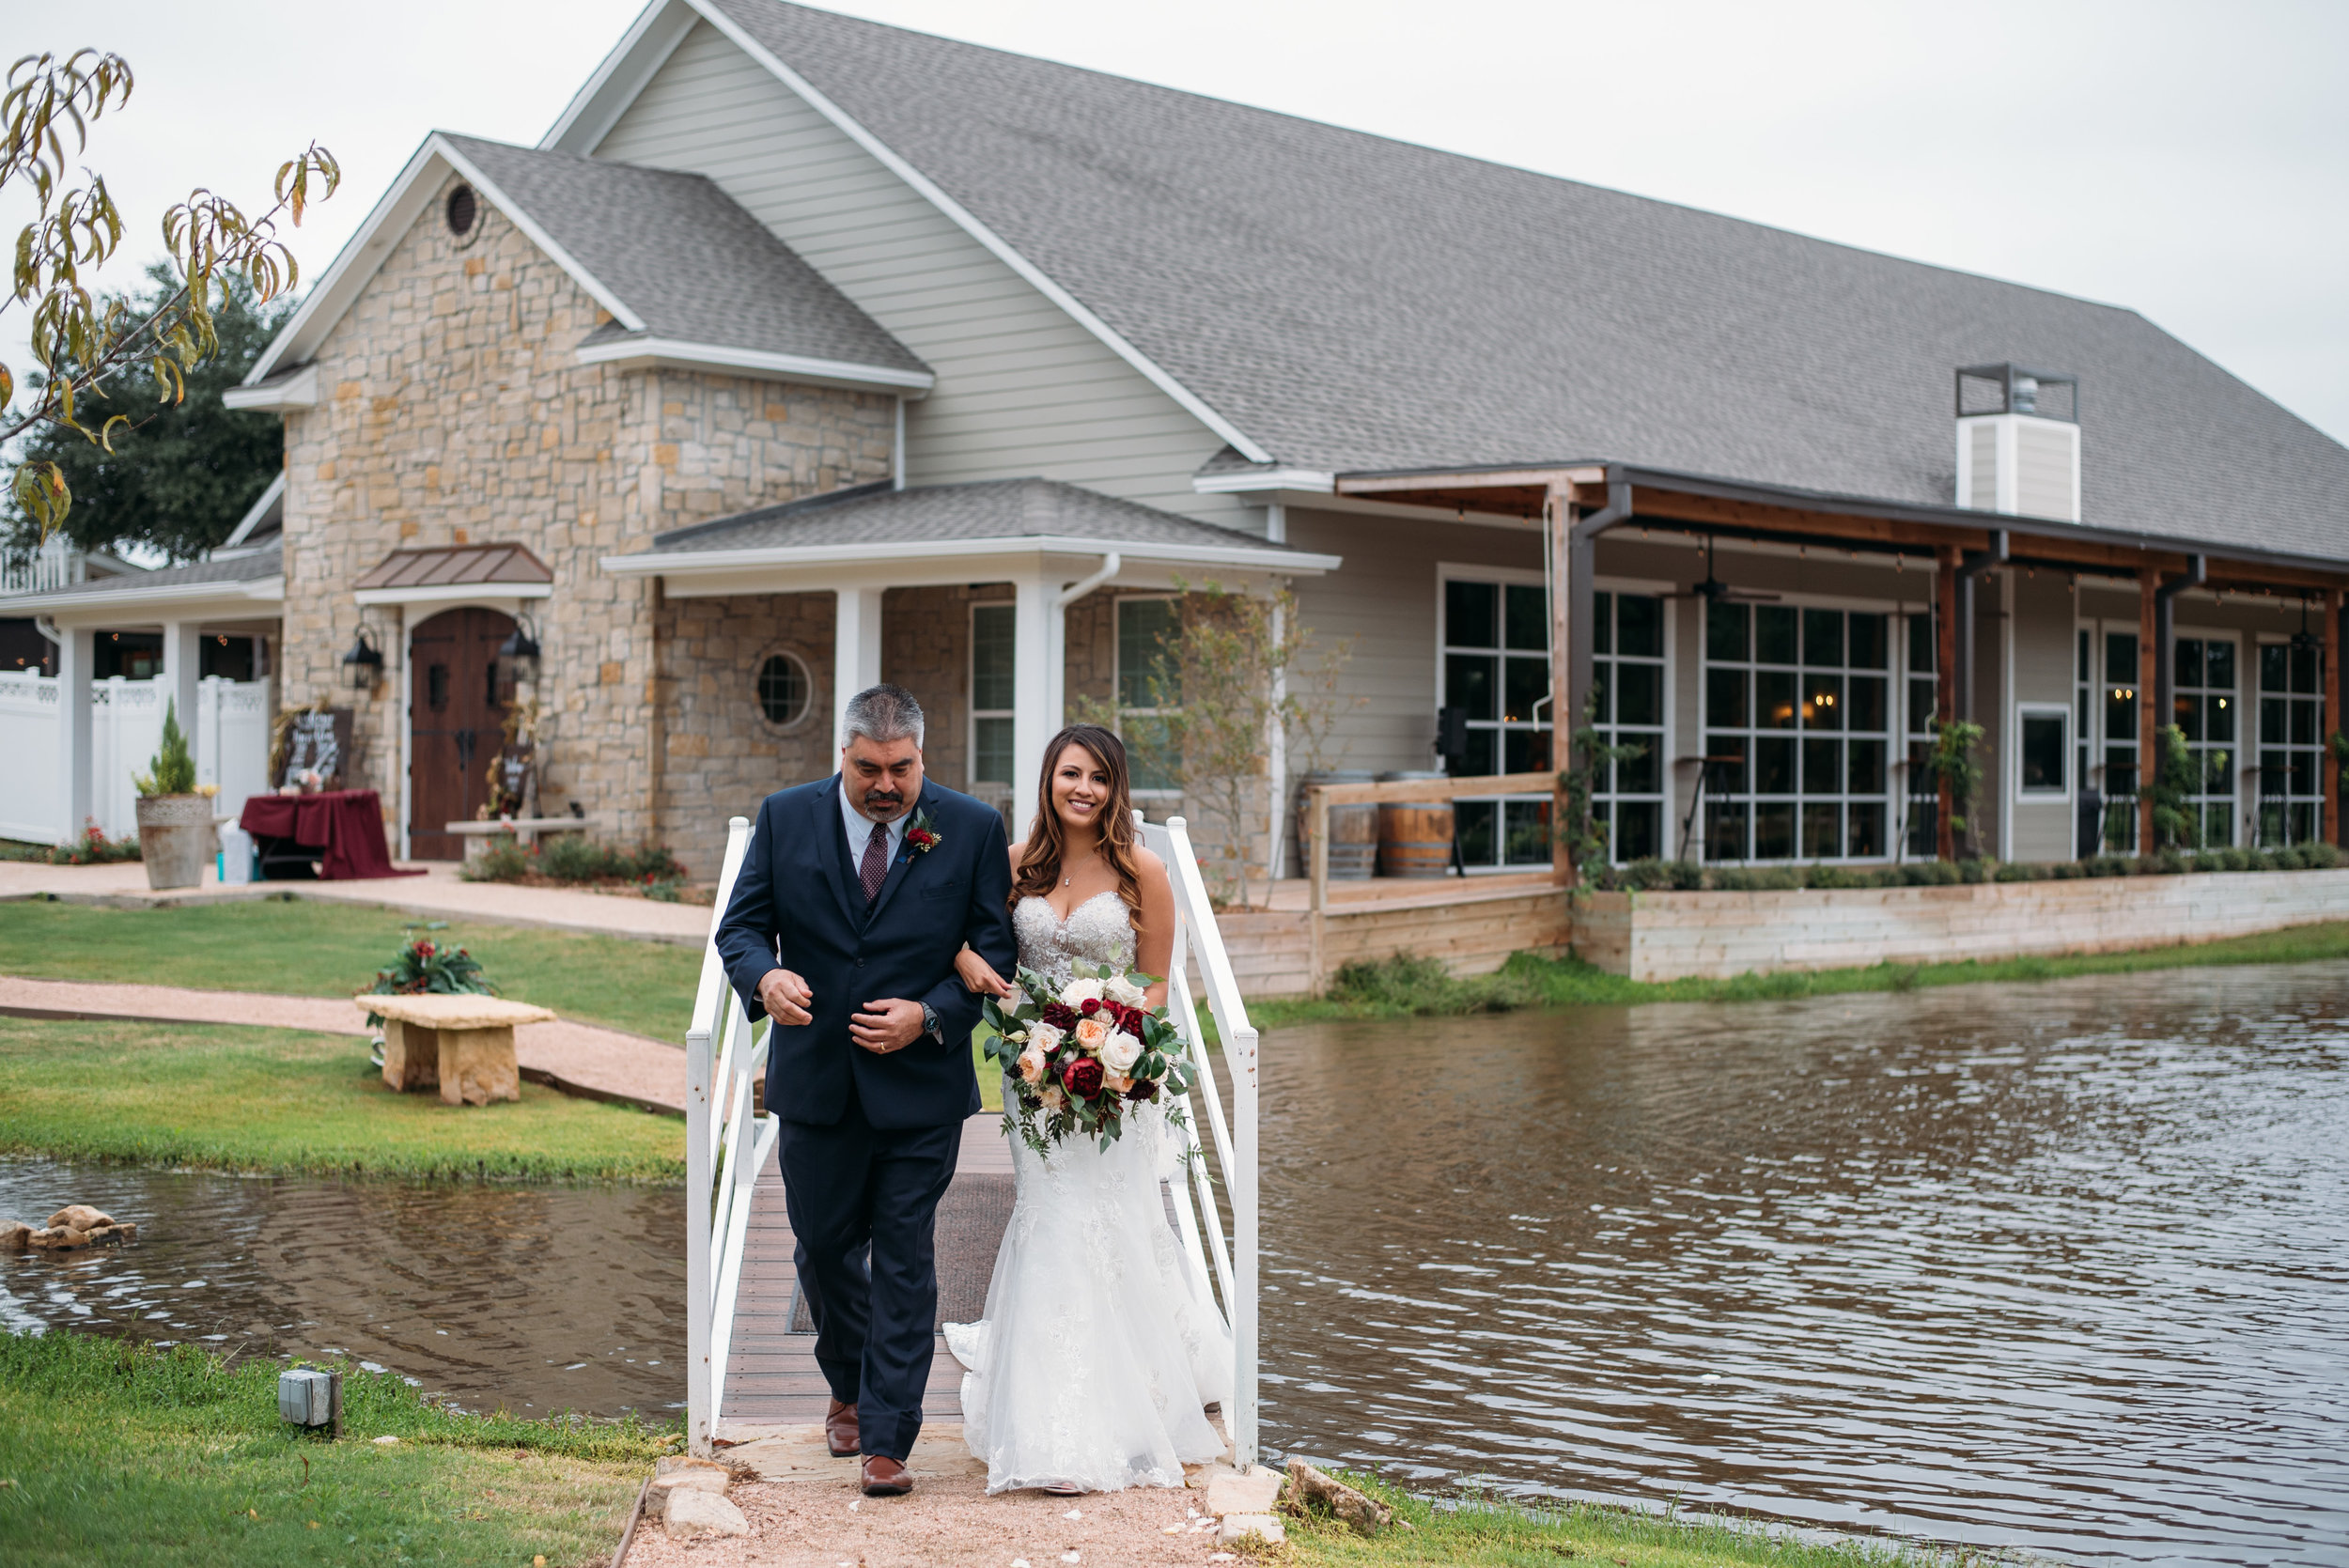 WeddingPhotographer_CollegeStation_InnAtQuarryRidge_19.jpg